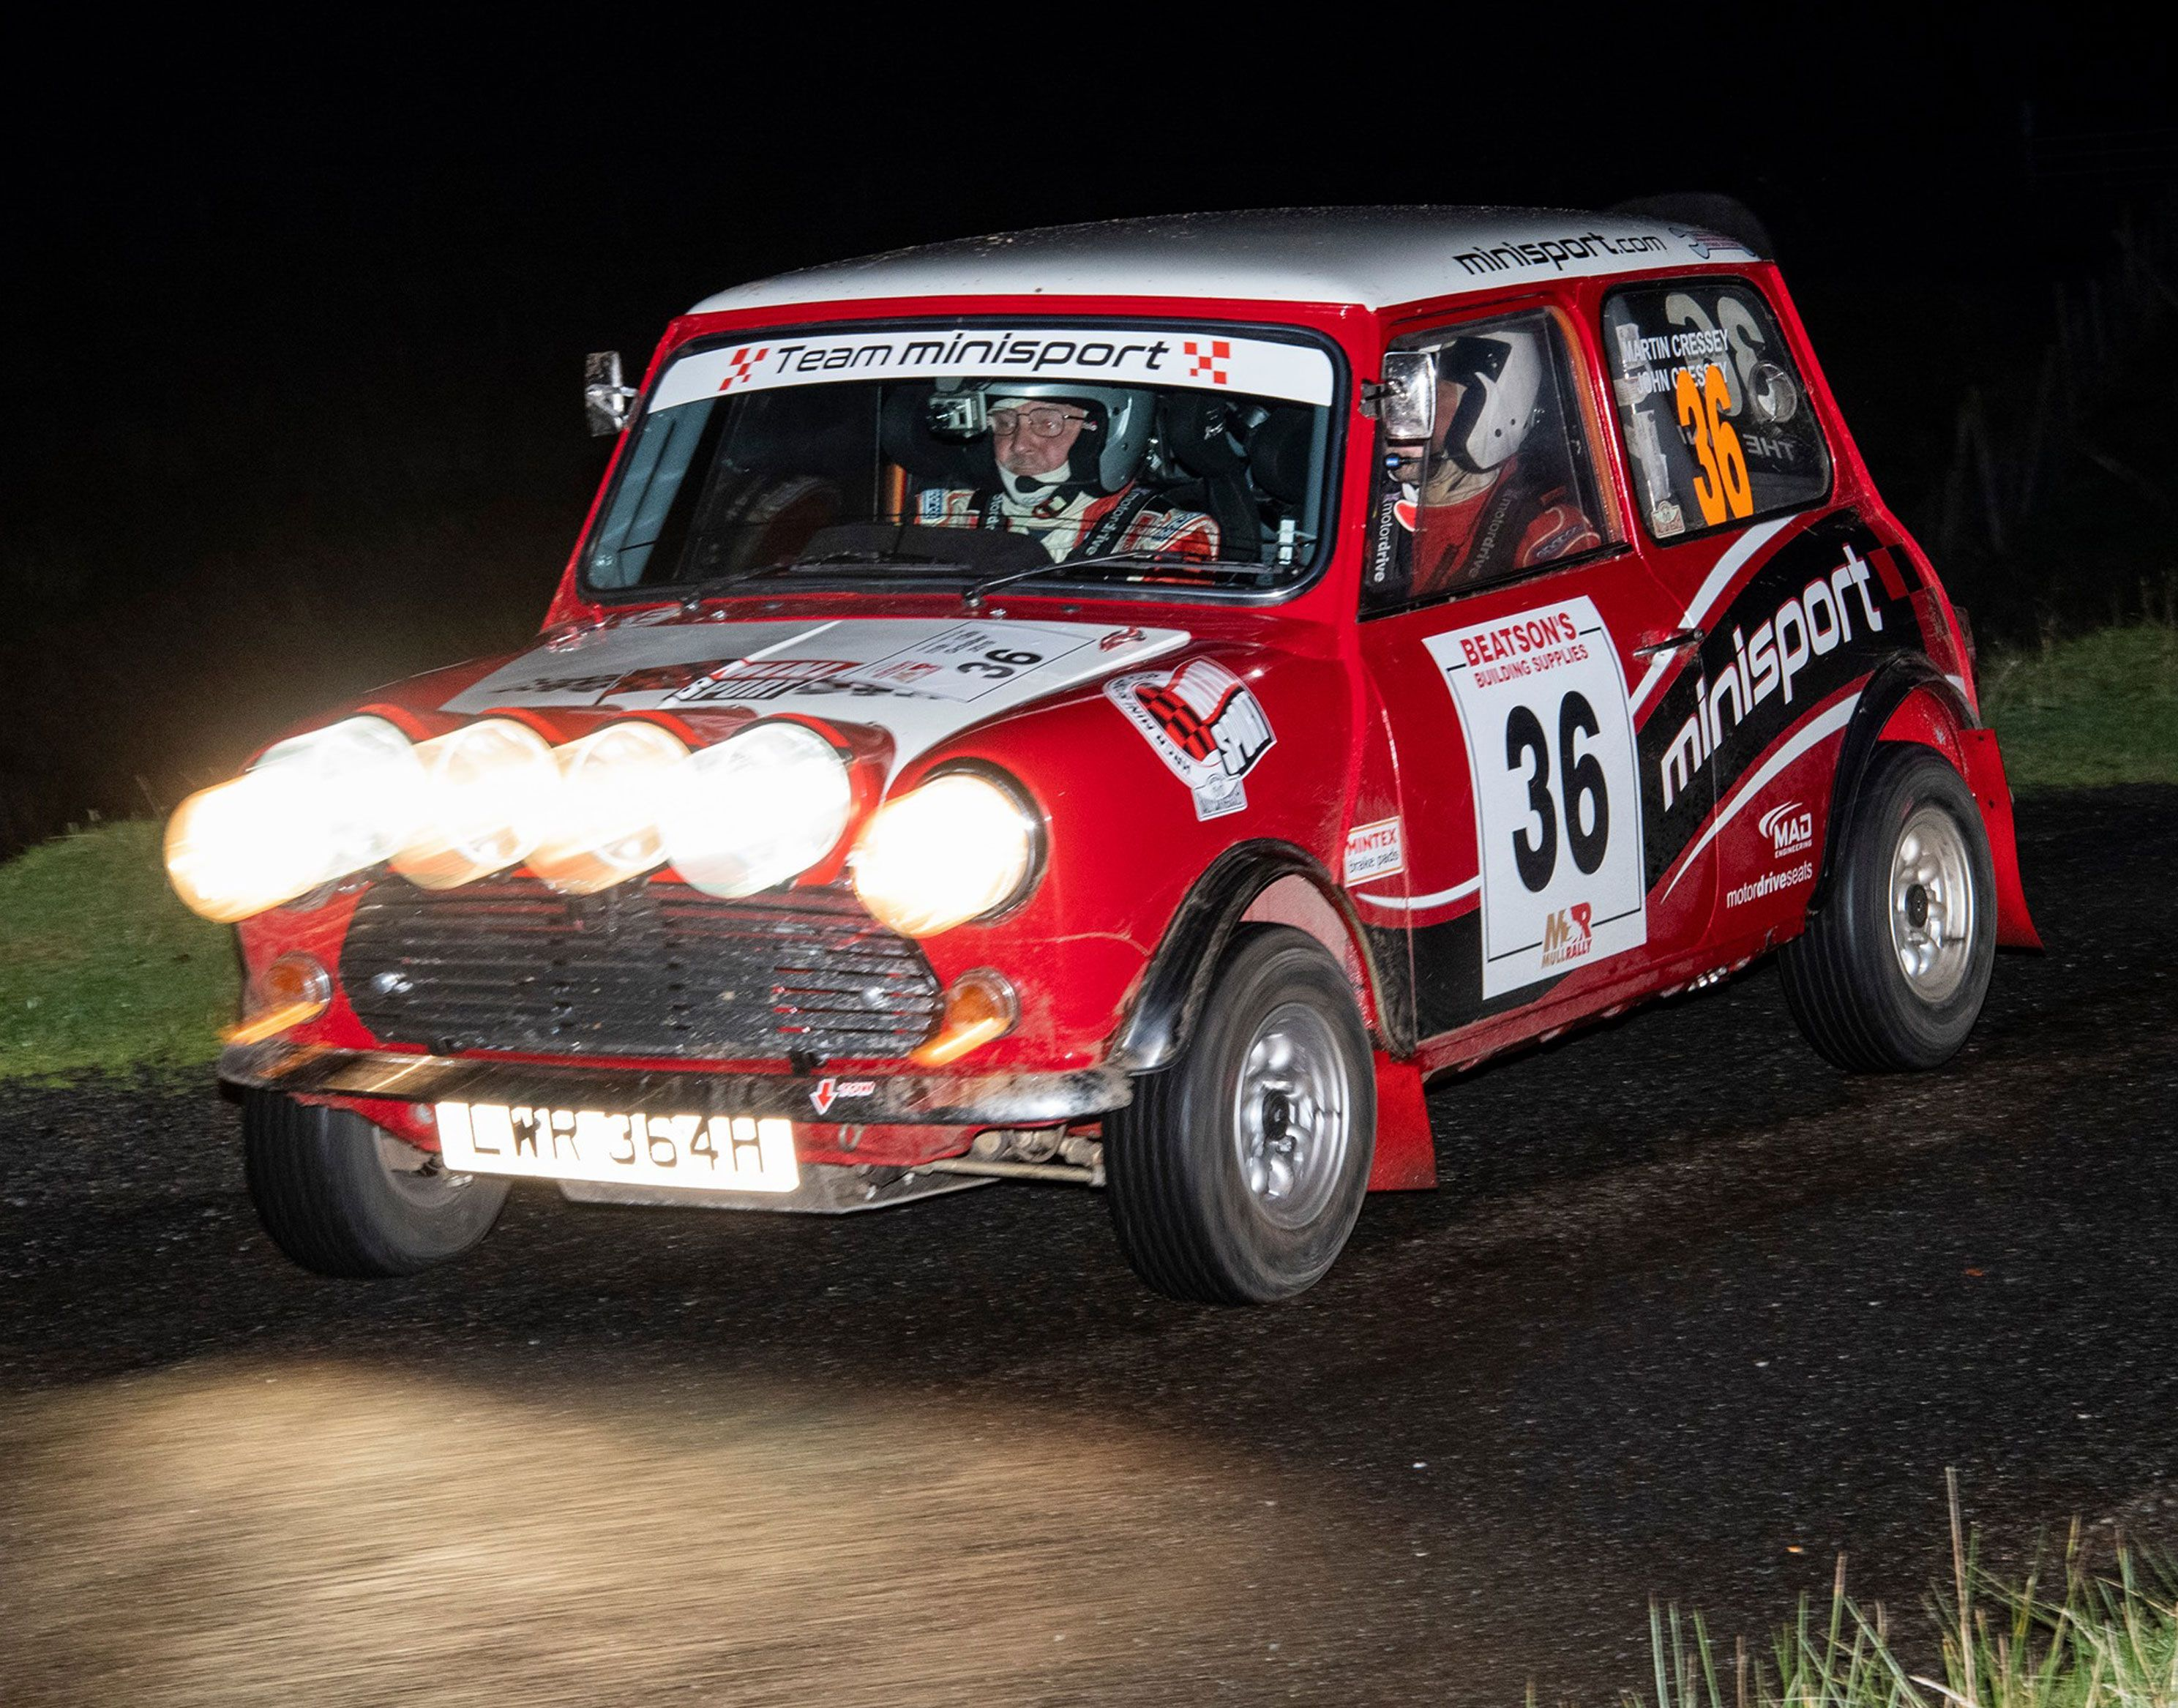 One of Team Mini Sport's Rally Minis competing on Mull Rally 2019